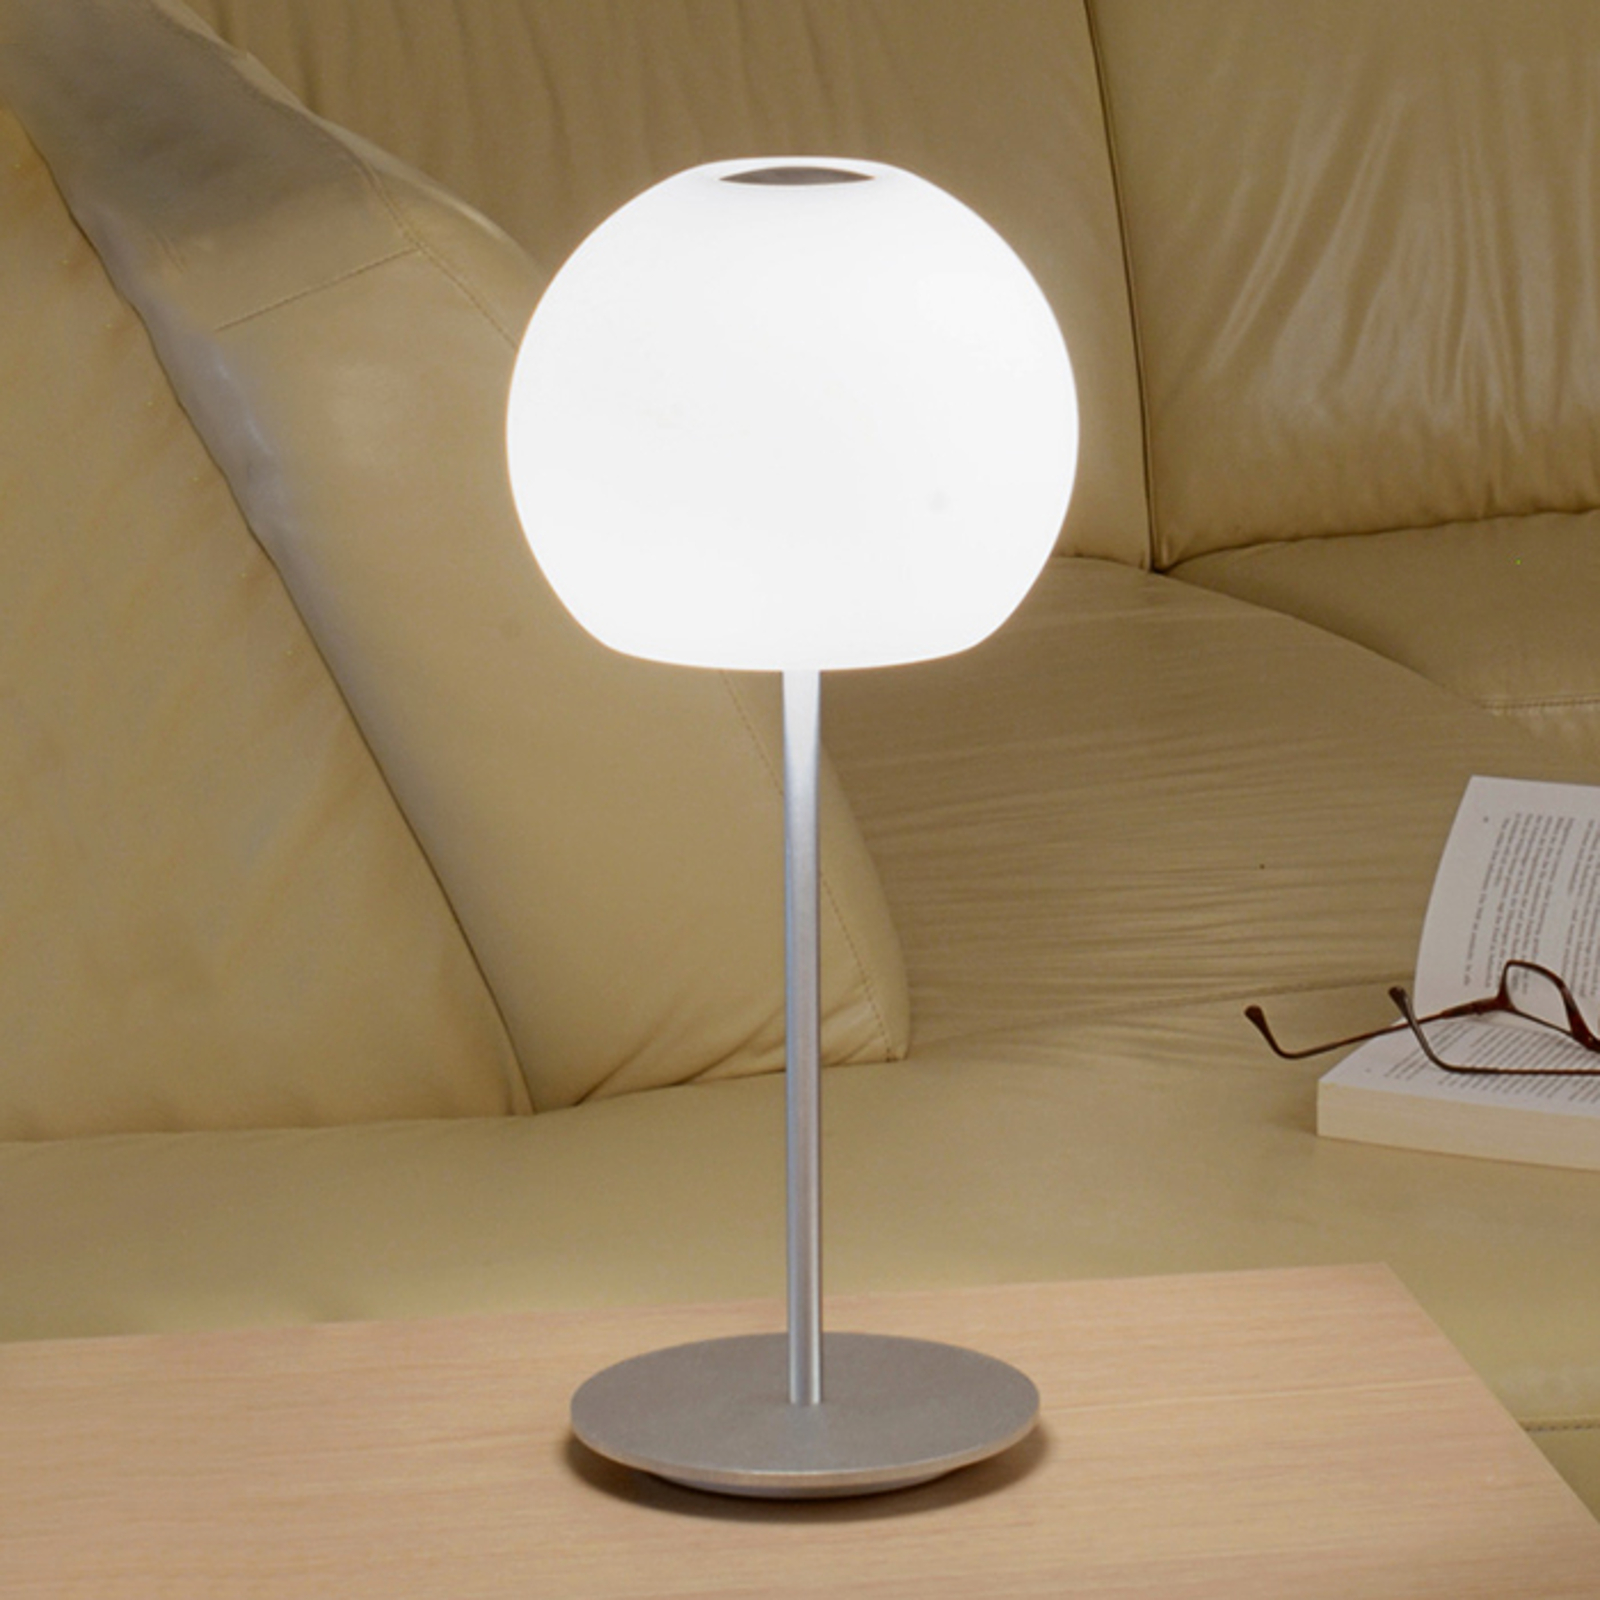 Casablanca Ball table lamp, height 49 cm_2000312_1